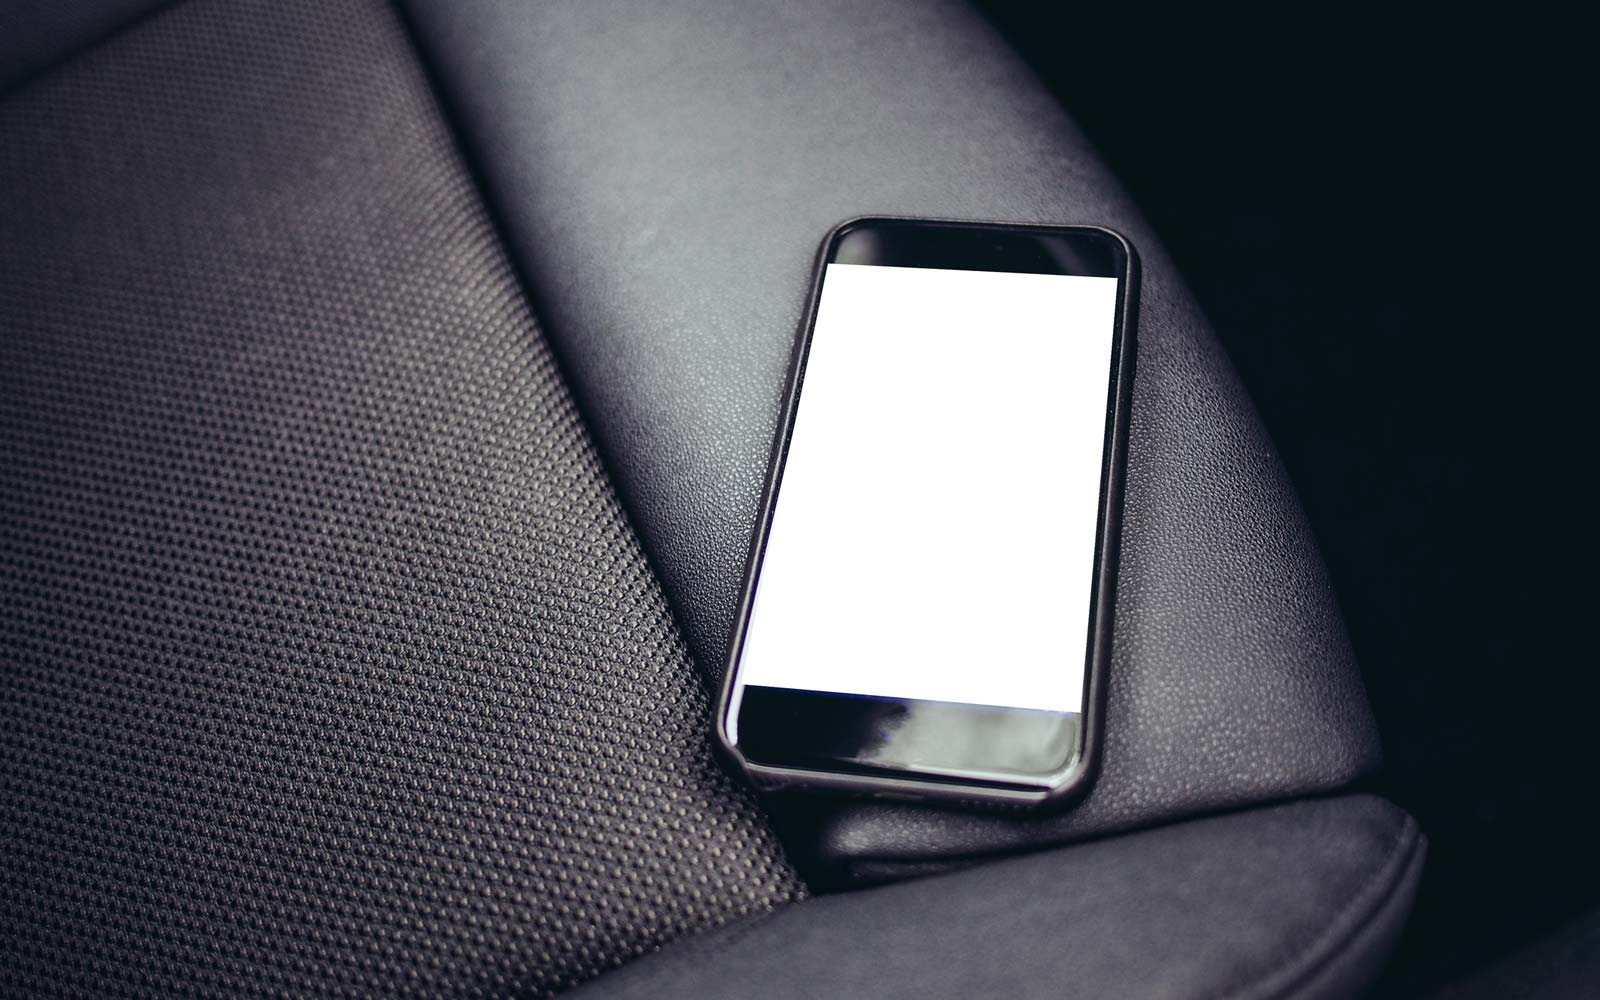 Close-Up Of Mobile Phone On Car Seat